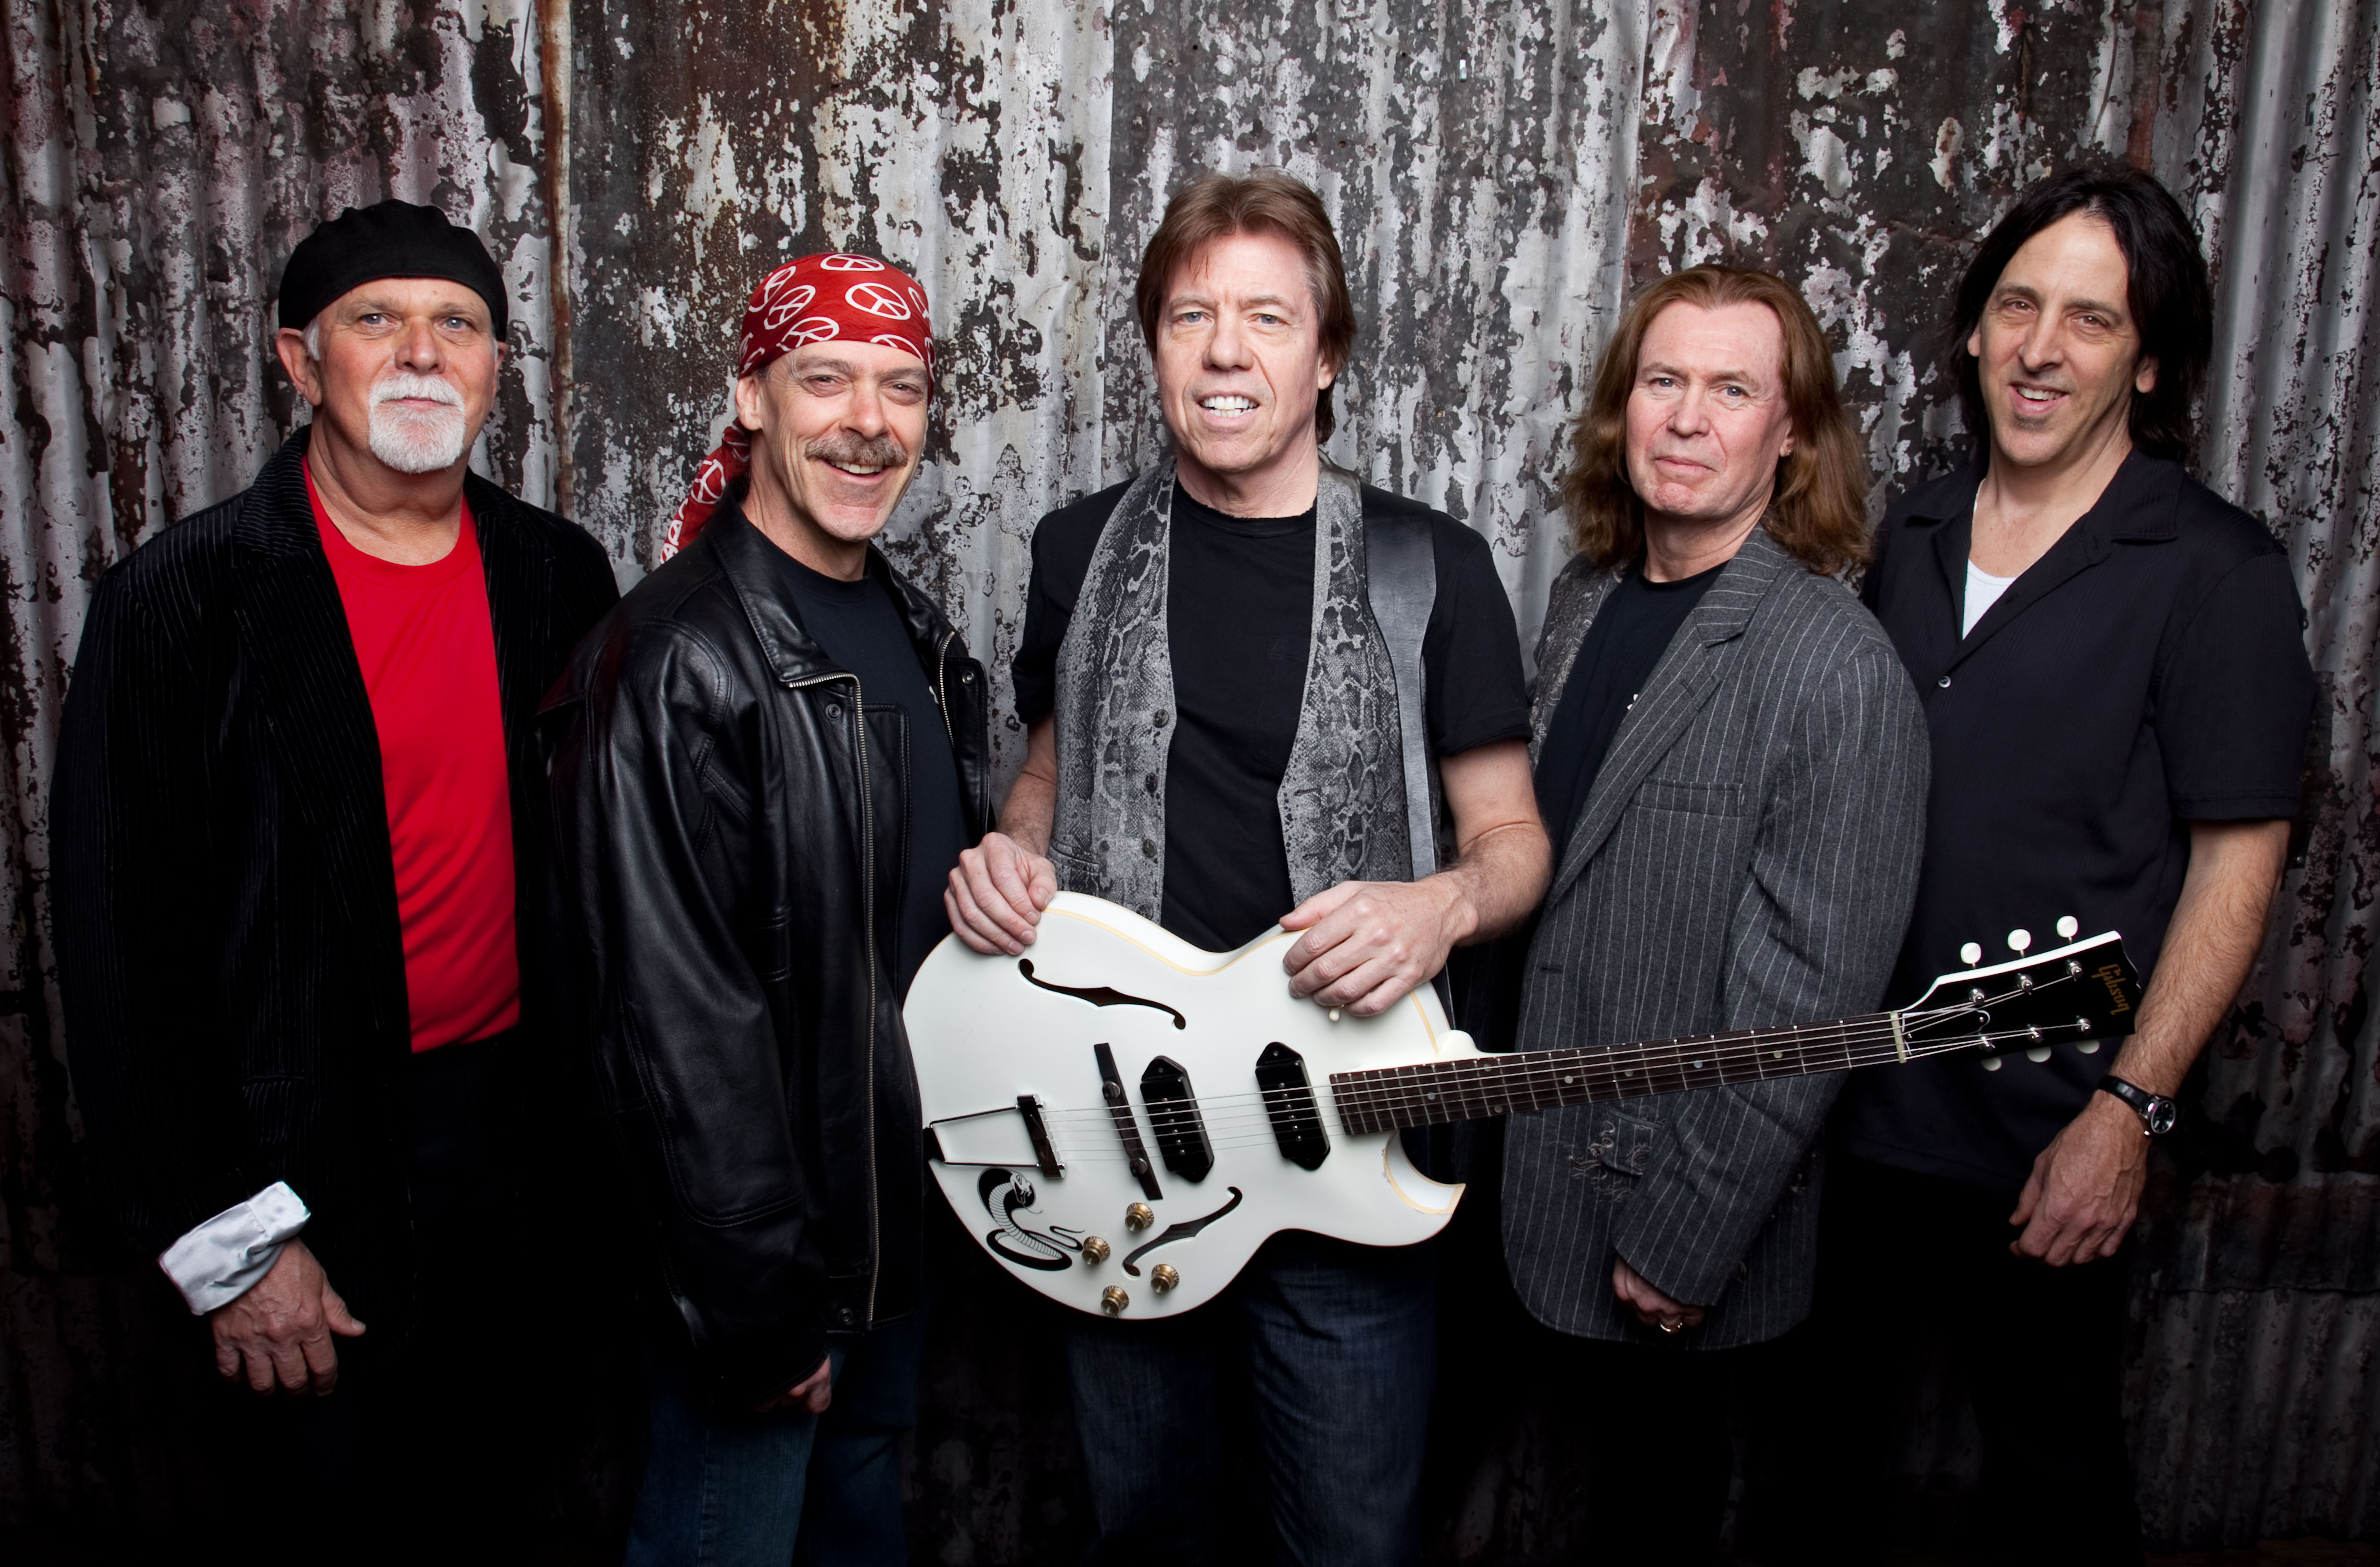 George Thorogood %& the Destroyers